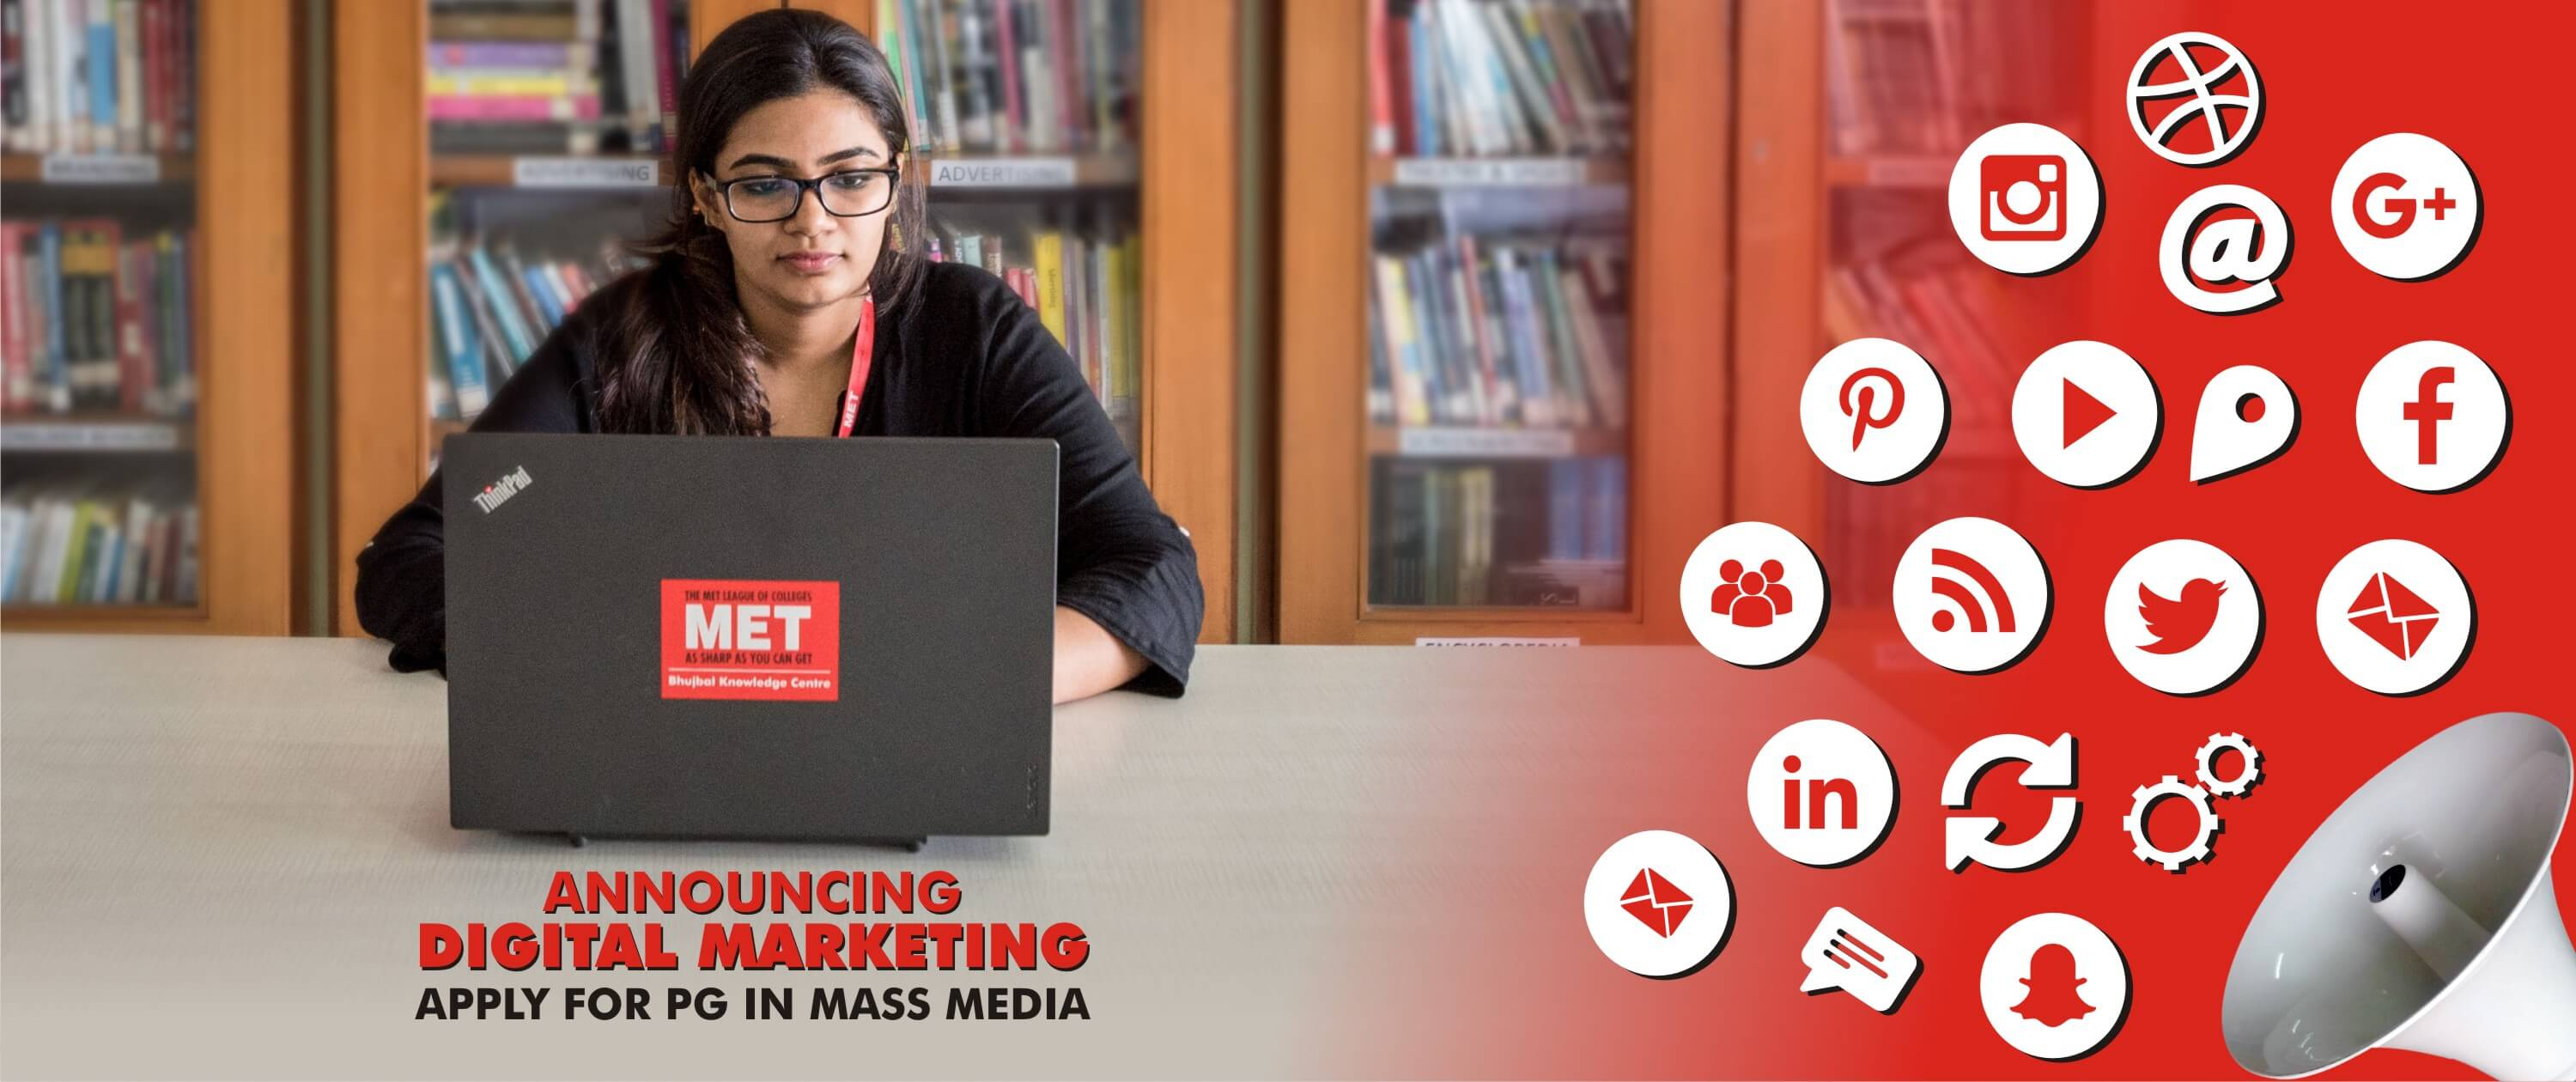 Advanced Diploma in Mass Media (ADMM) - Digital Marketing